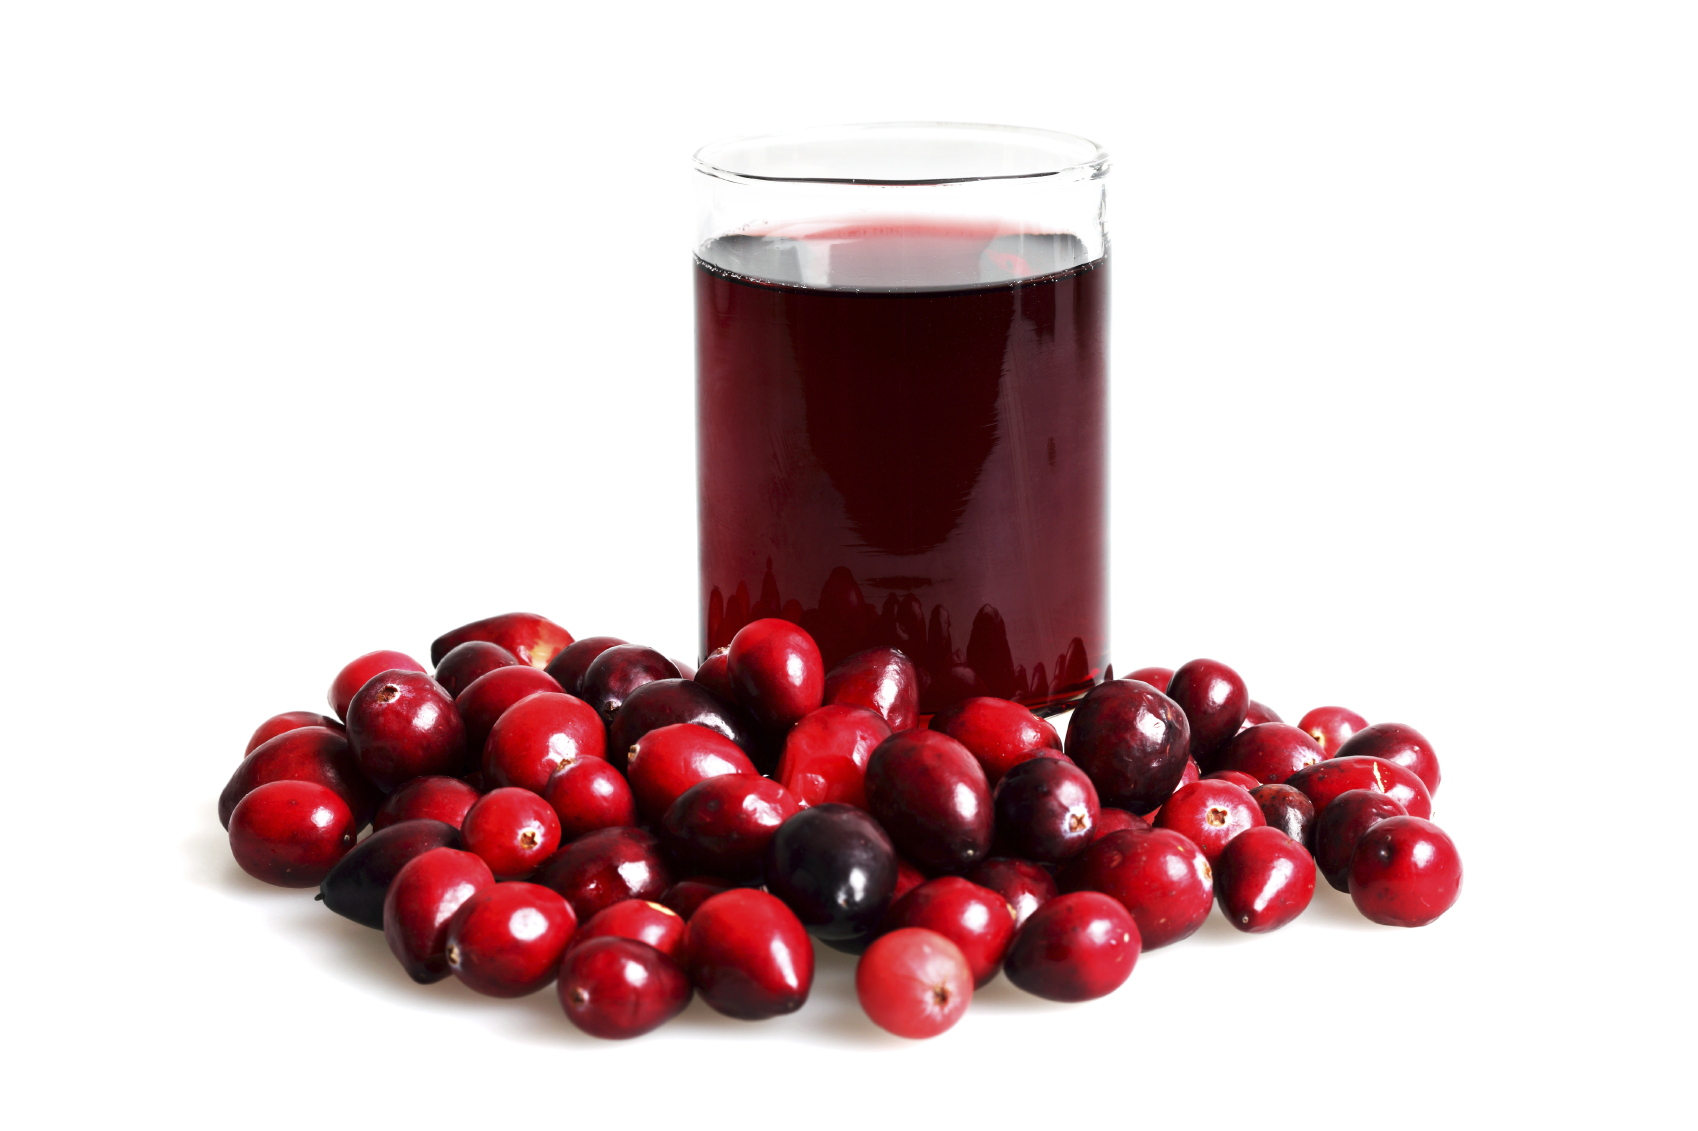 Studies suggest cranberry juice can help ward off urinary-tract infections and might even prevent periodontitis and gingivitis by keeping bacteria from adhering to your teeth and gums